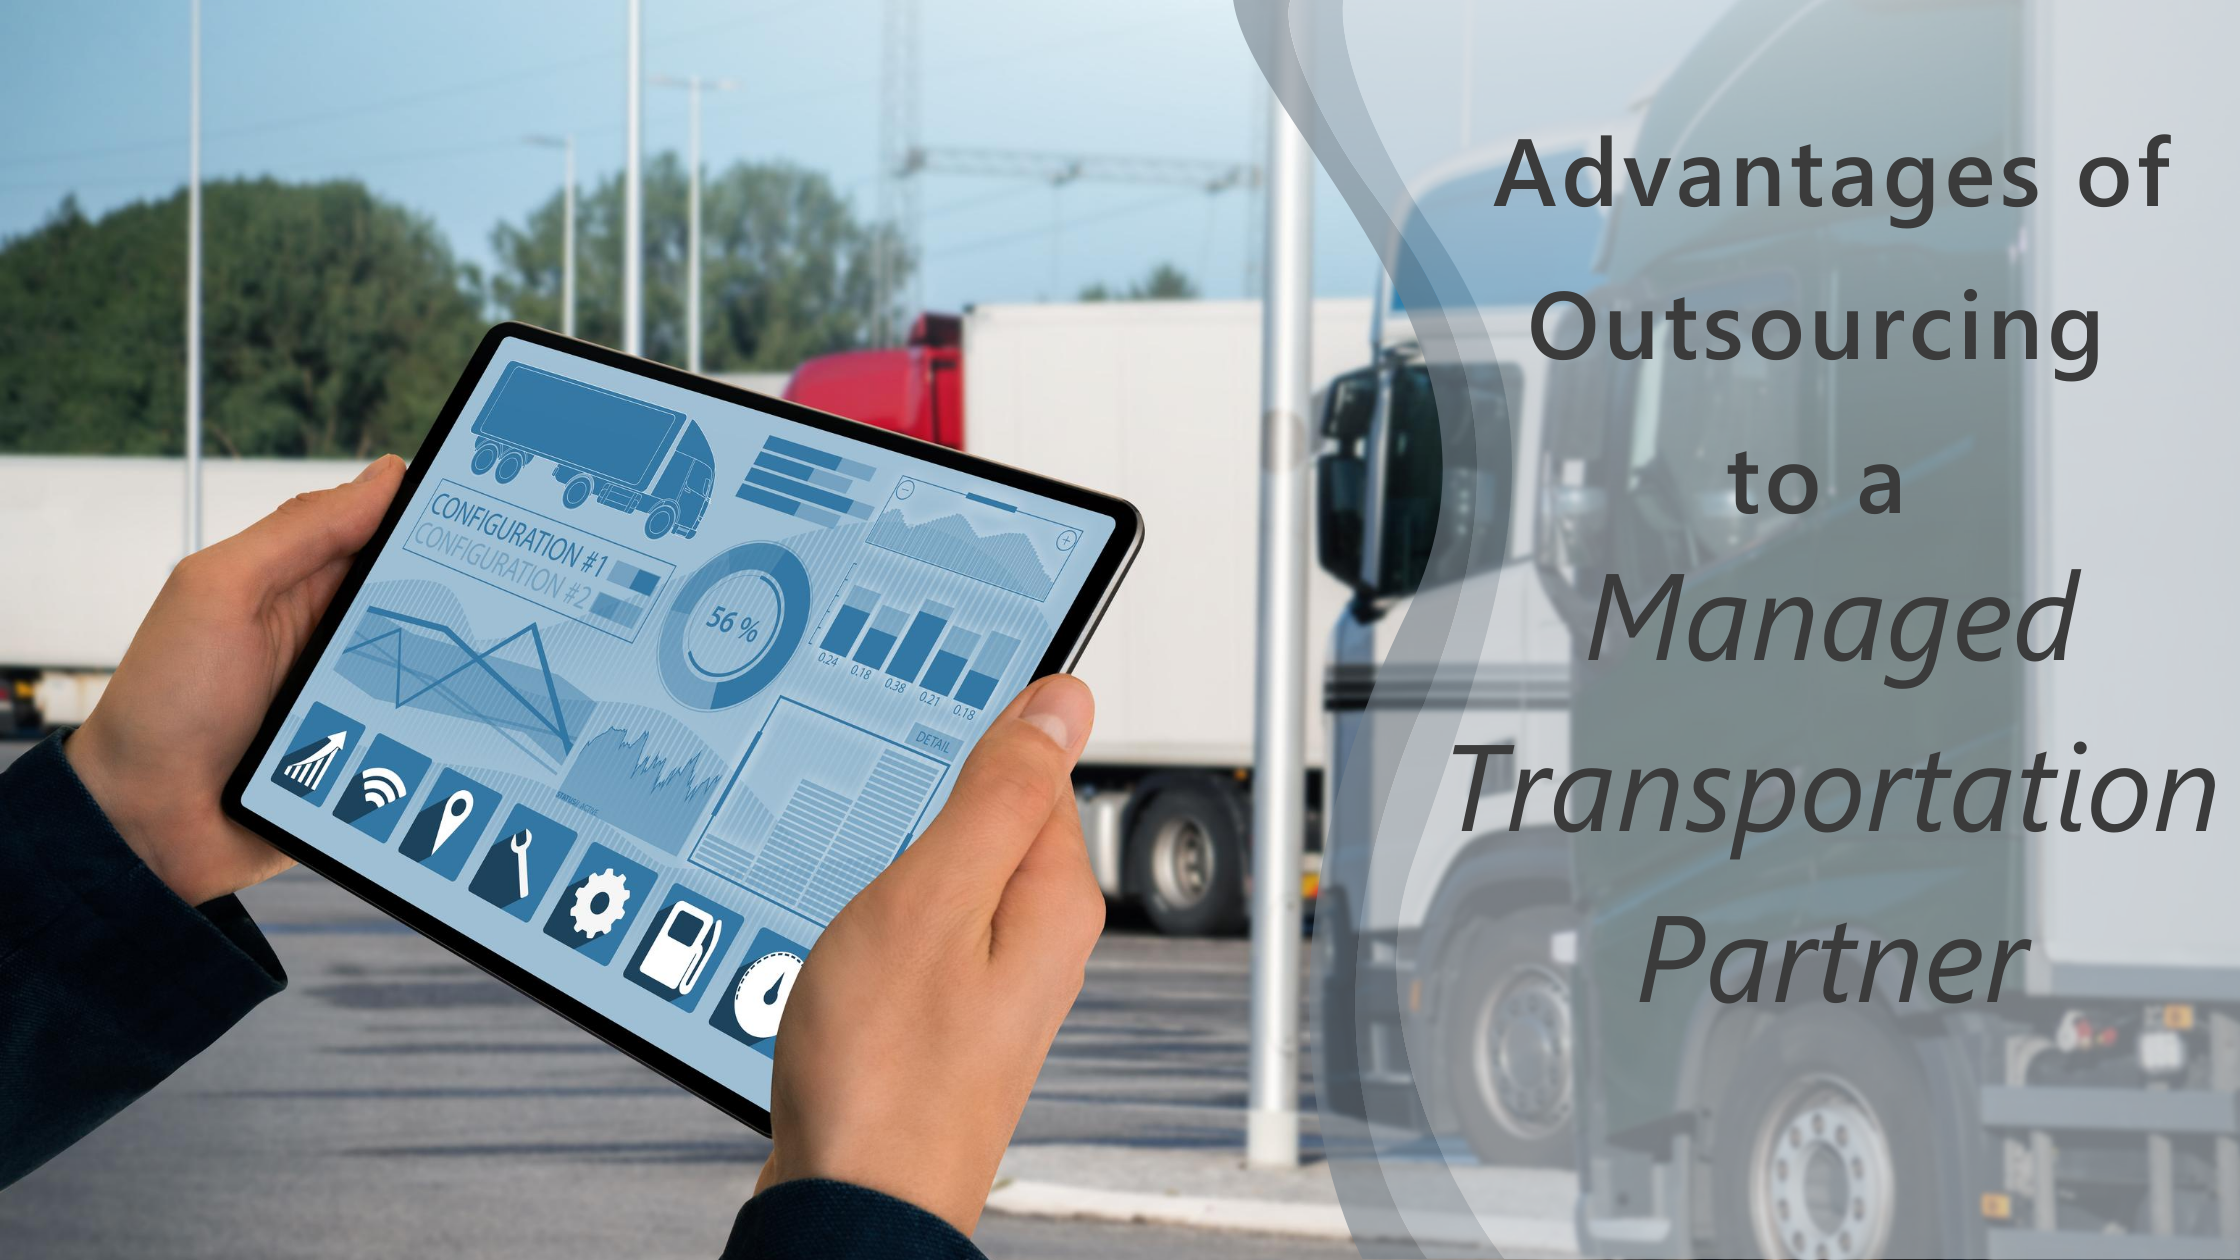 Advantages-to-Outsourcing-to-a-Managed-Transportation-Partner-hands-holding-a-digital-notebook-with-graphs-and-charts-and-a-truck-in-front-of-parked-semi-trucks